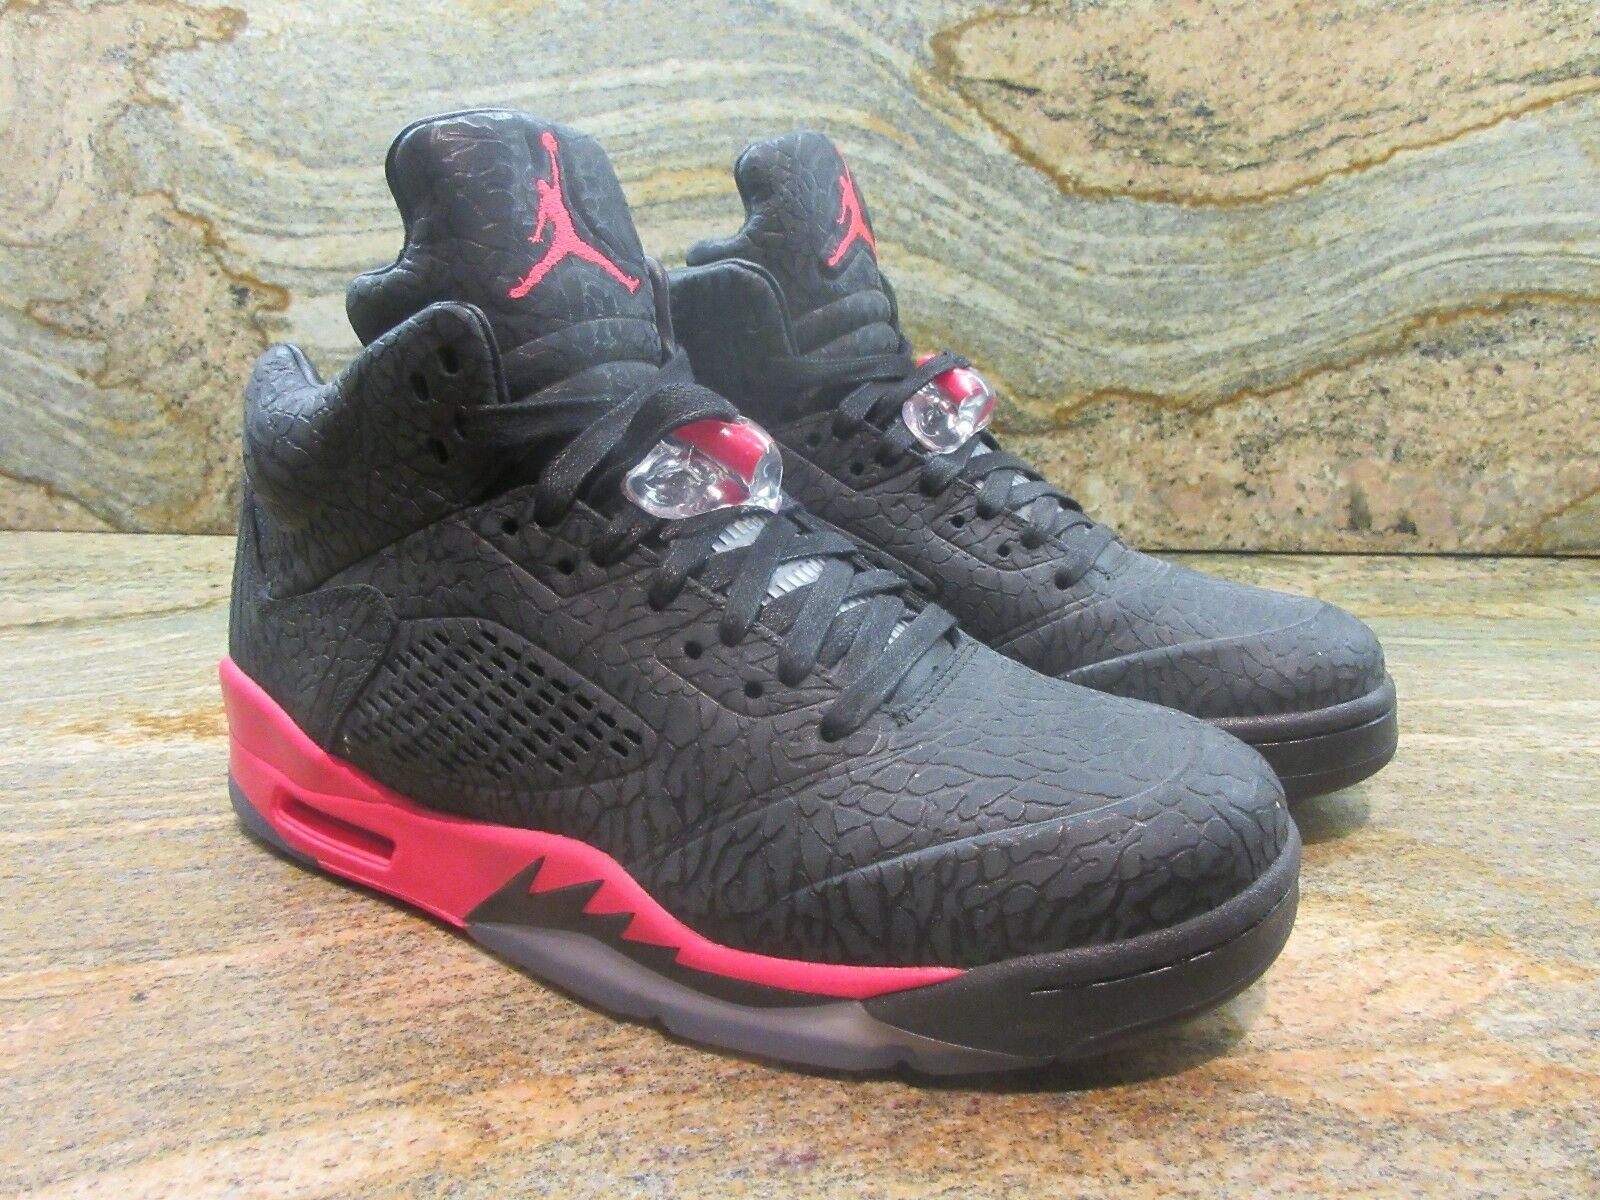 2013 Nike Air Jordan 3Lab5 Retro SZ 9 Black 5 Infrared 3 Cement OG 599581-010